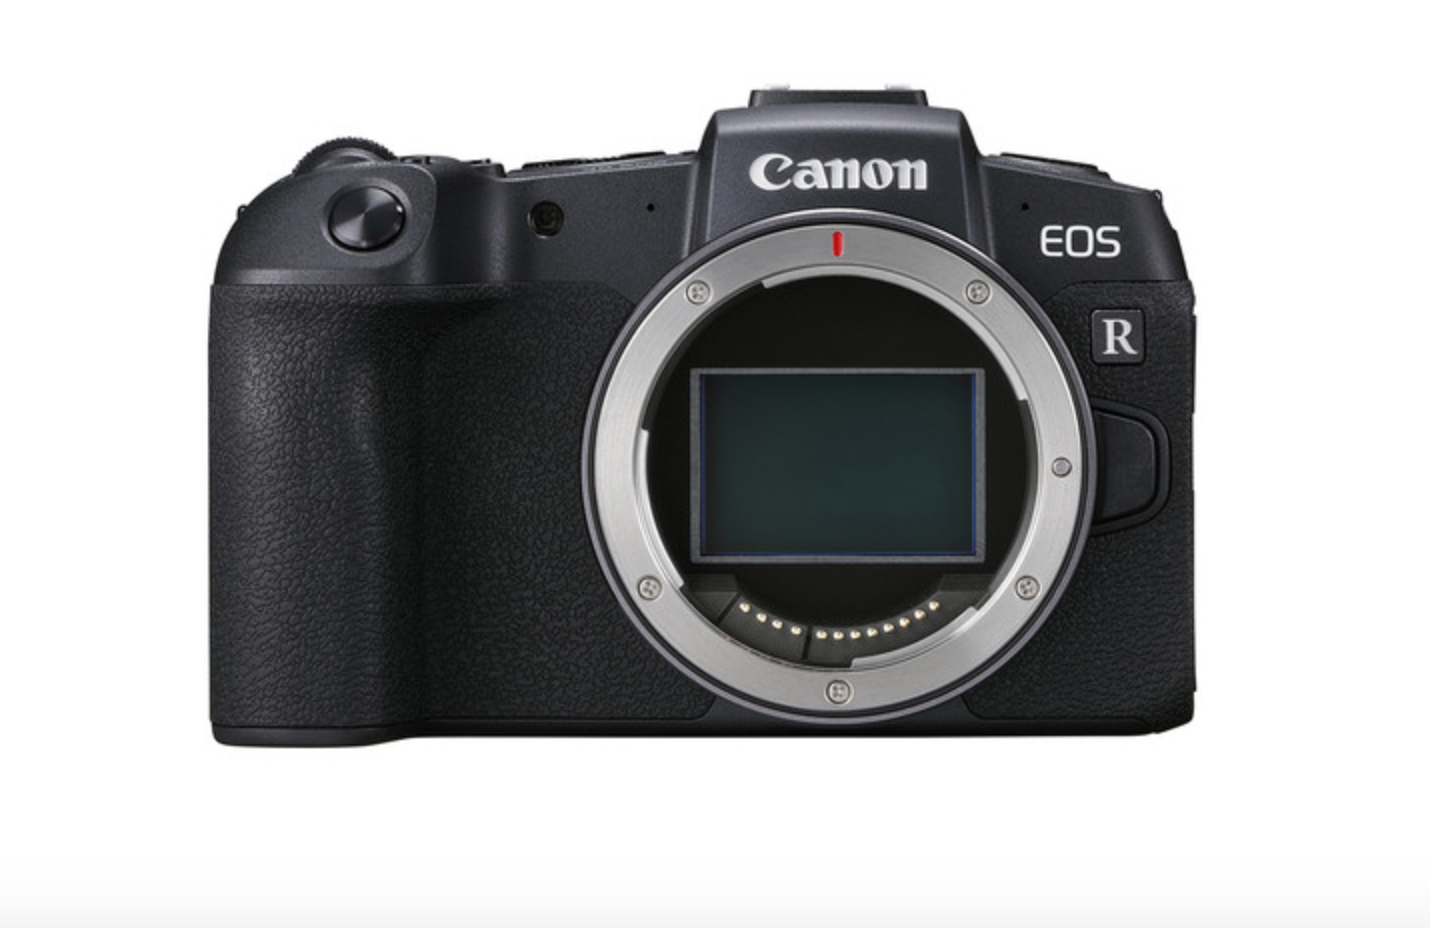 http://thedigitalstory.com/2019/02/19/Canon-RP-front.png